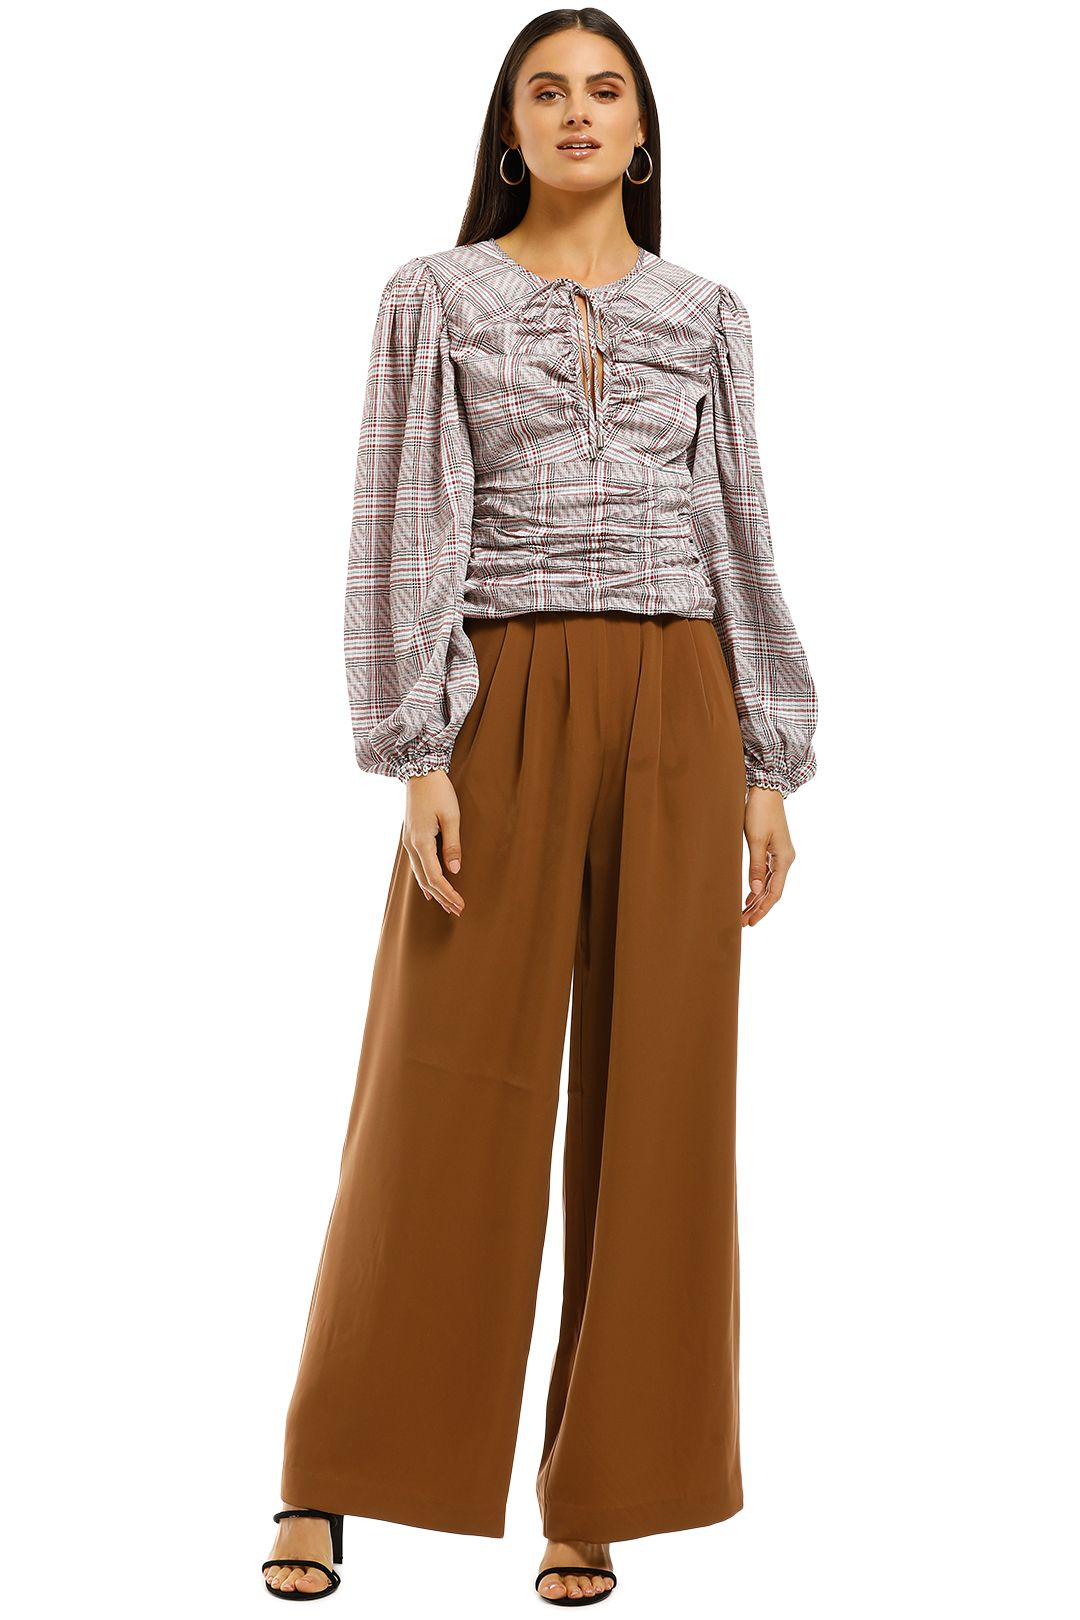 CMEO-Collective-No-Time-LS-Top-Plaid-Front